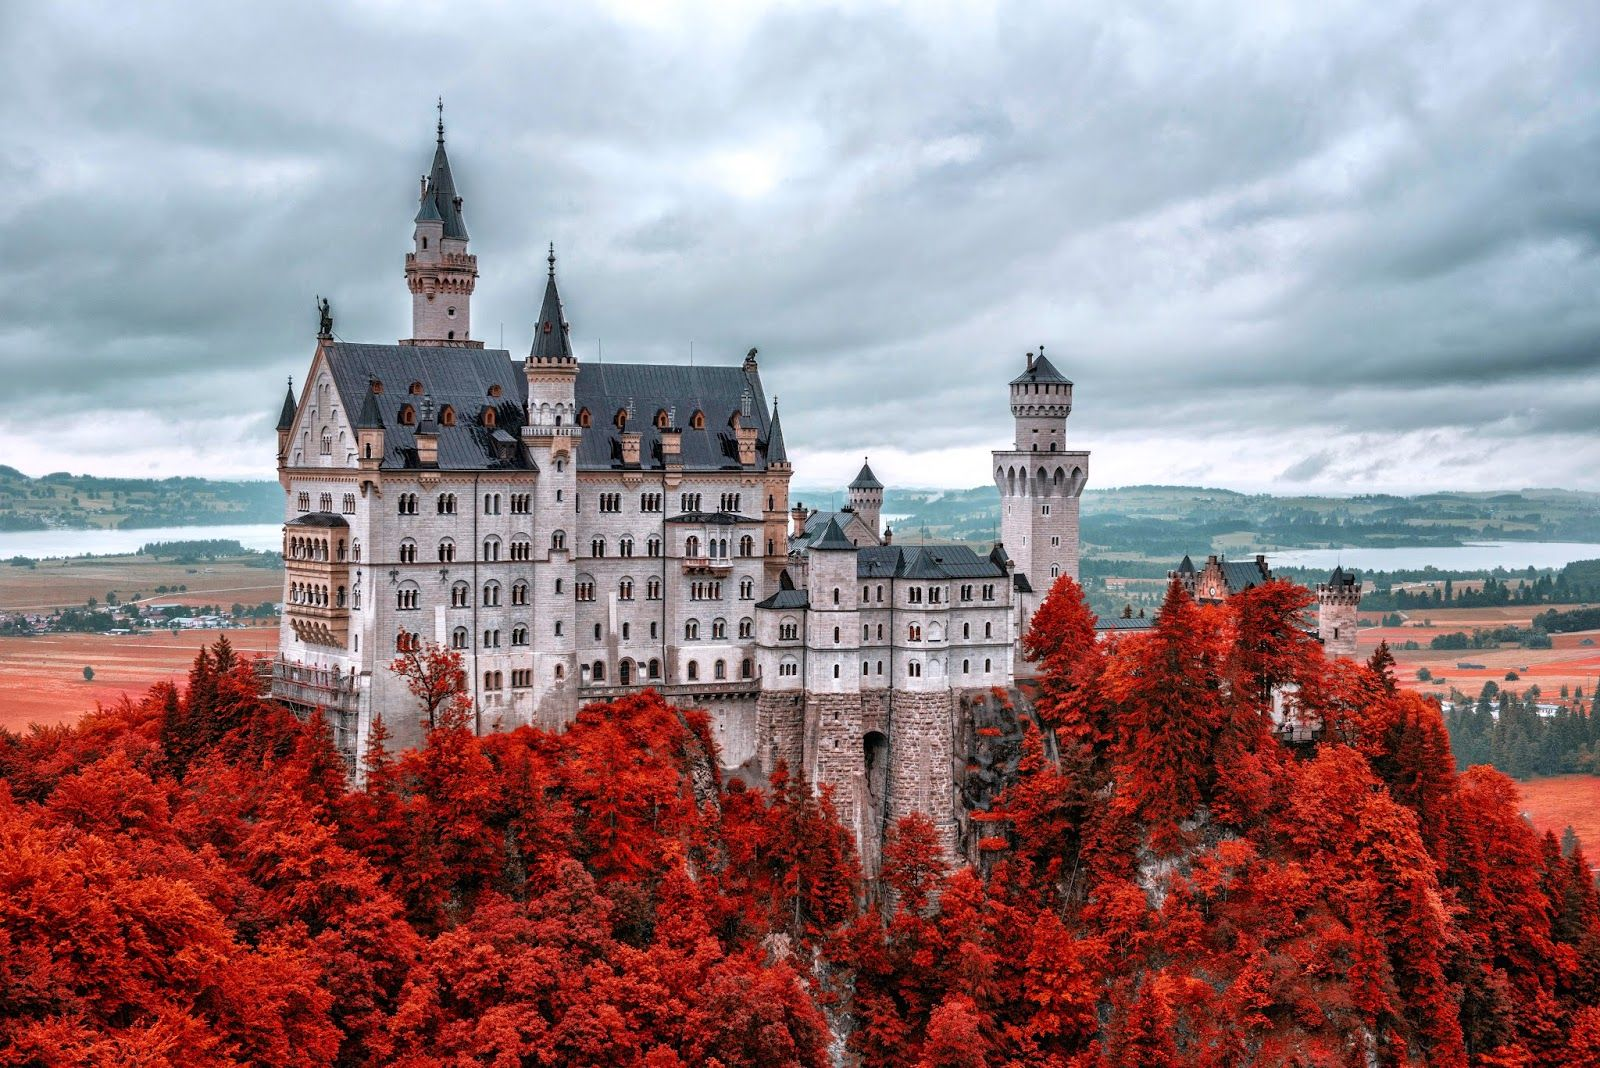 Germany Is Known For Its World Class Castles Sitting High On Mountain Tops With Their Towers And Turrets Reaching Neuschwanstein Castle Germany Castles Castle